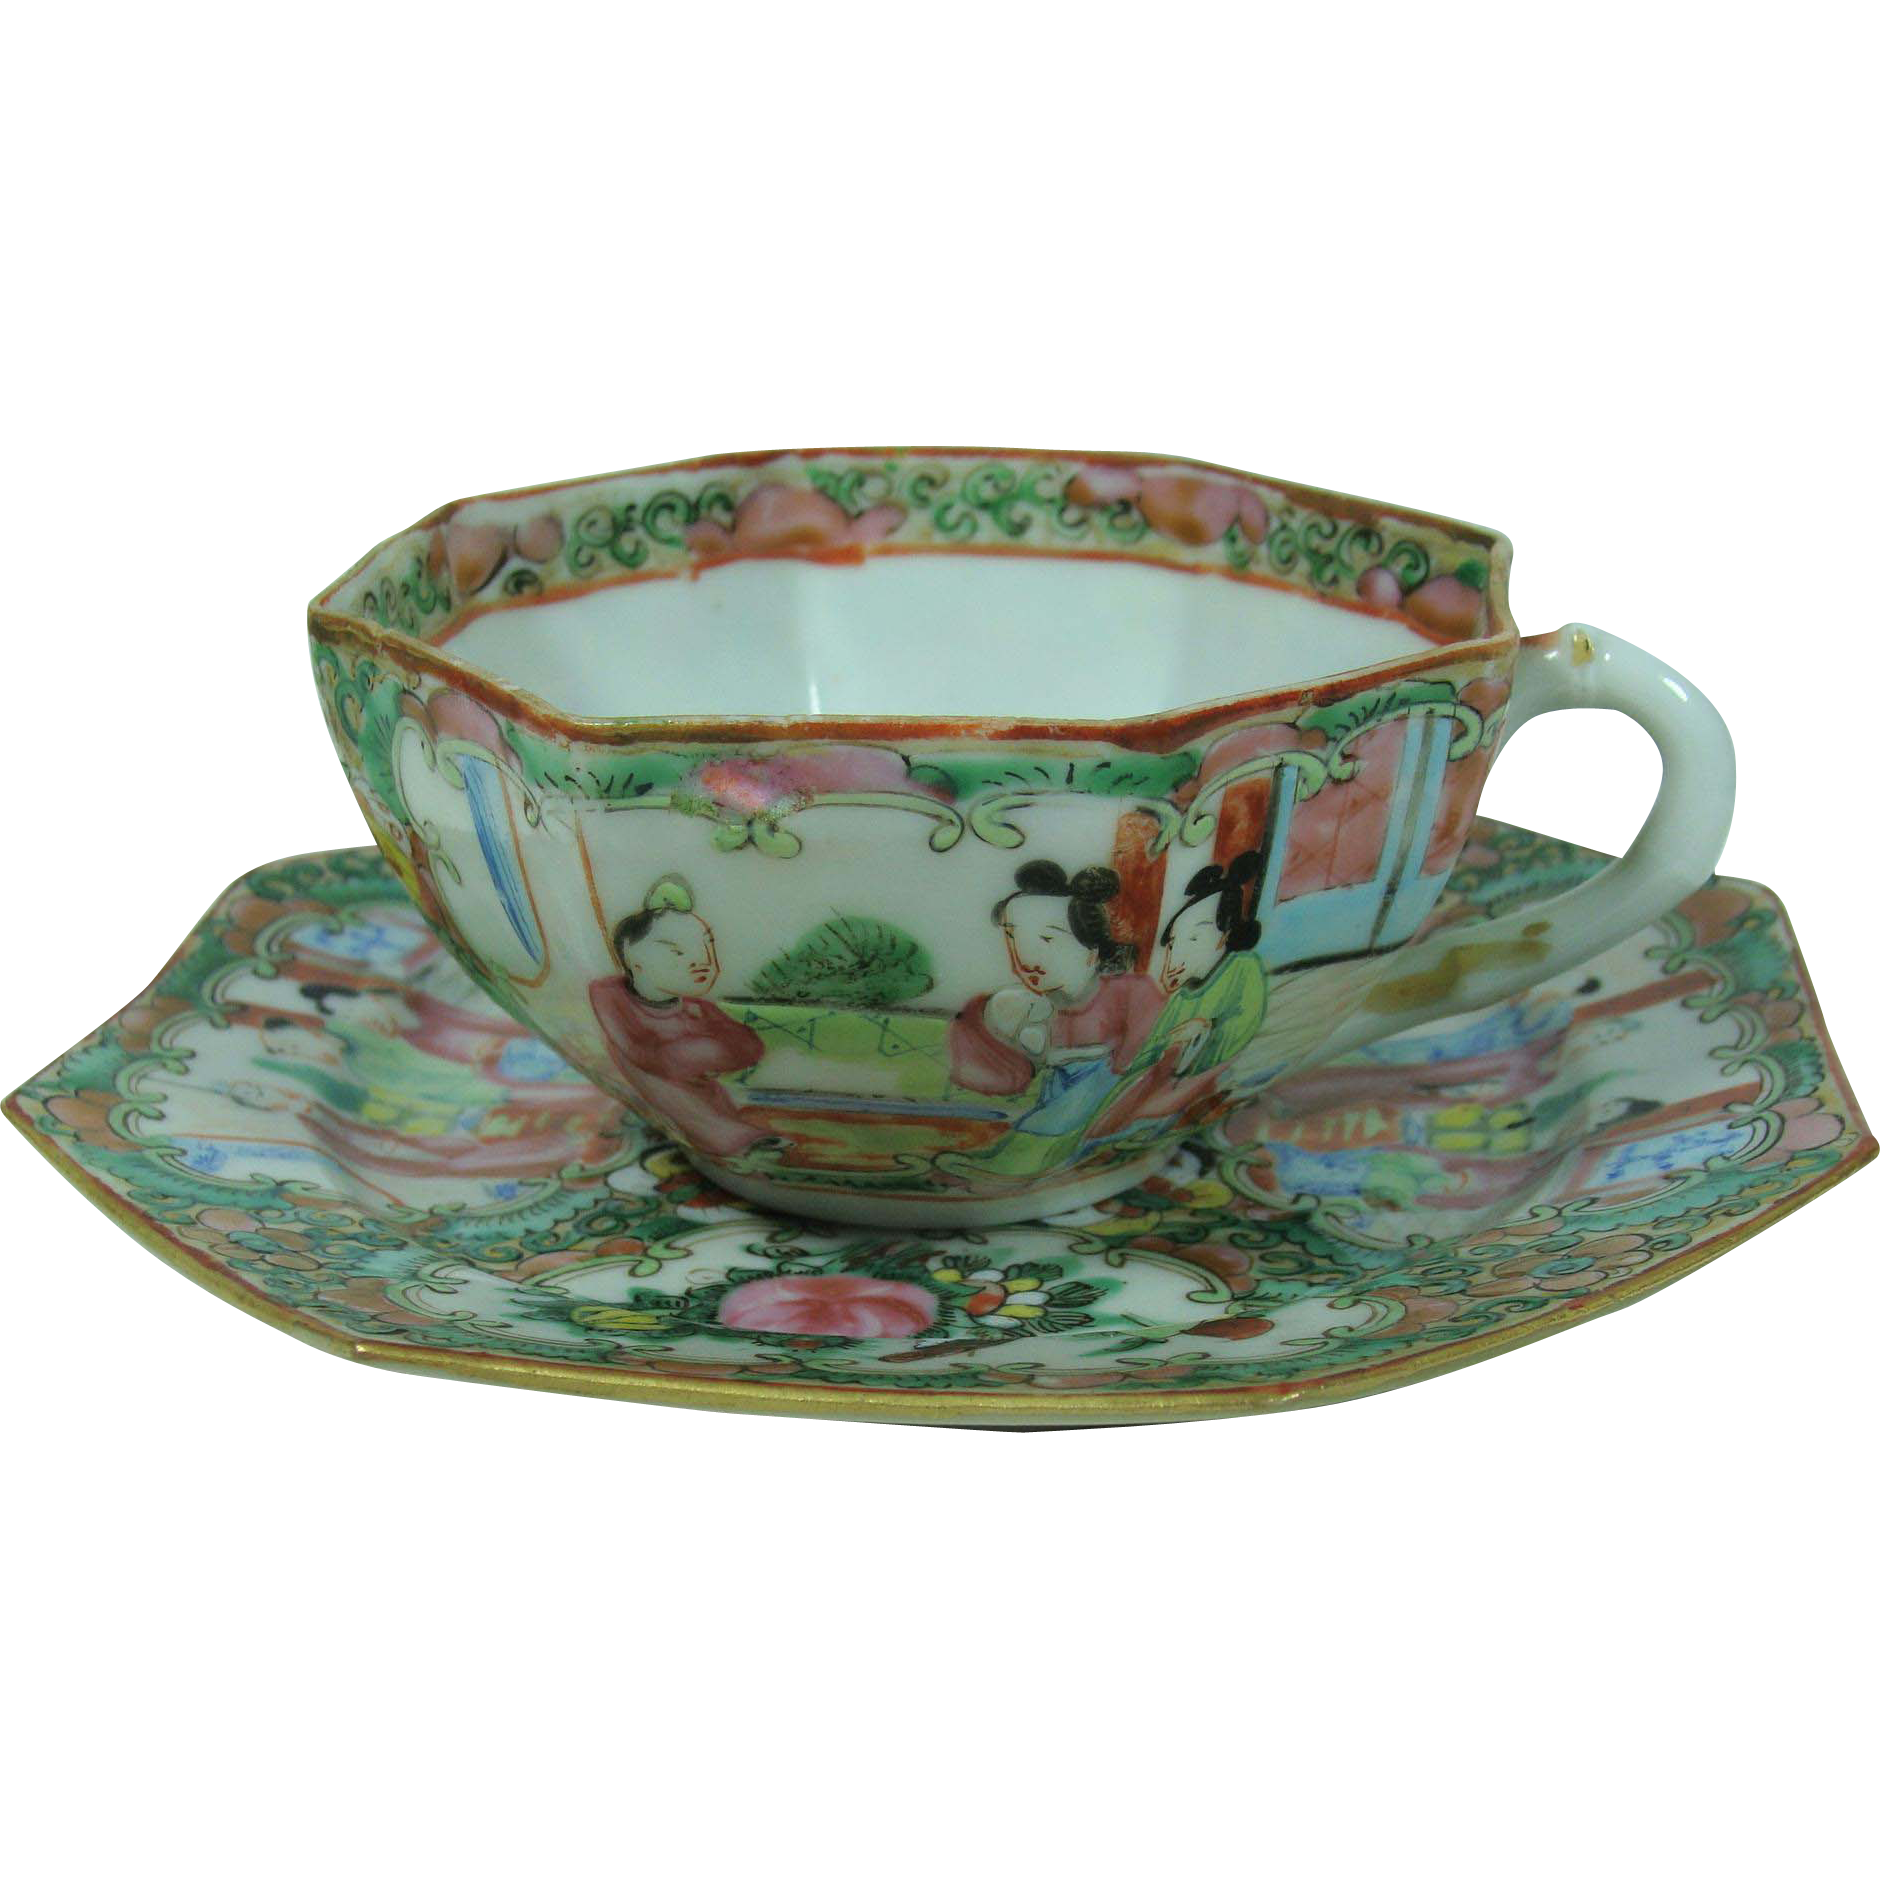 Rose Medallion Octagonal Cup and Saucer